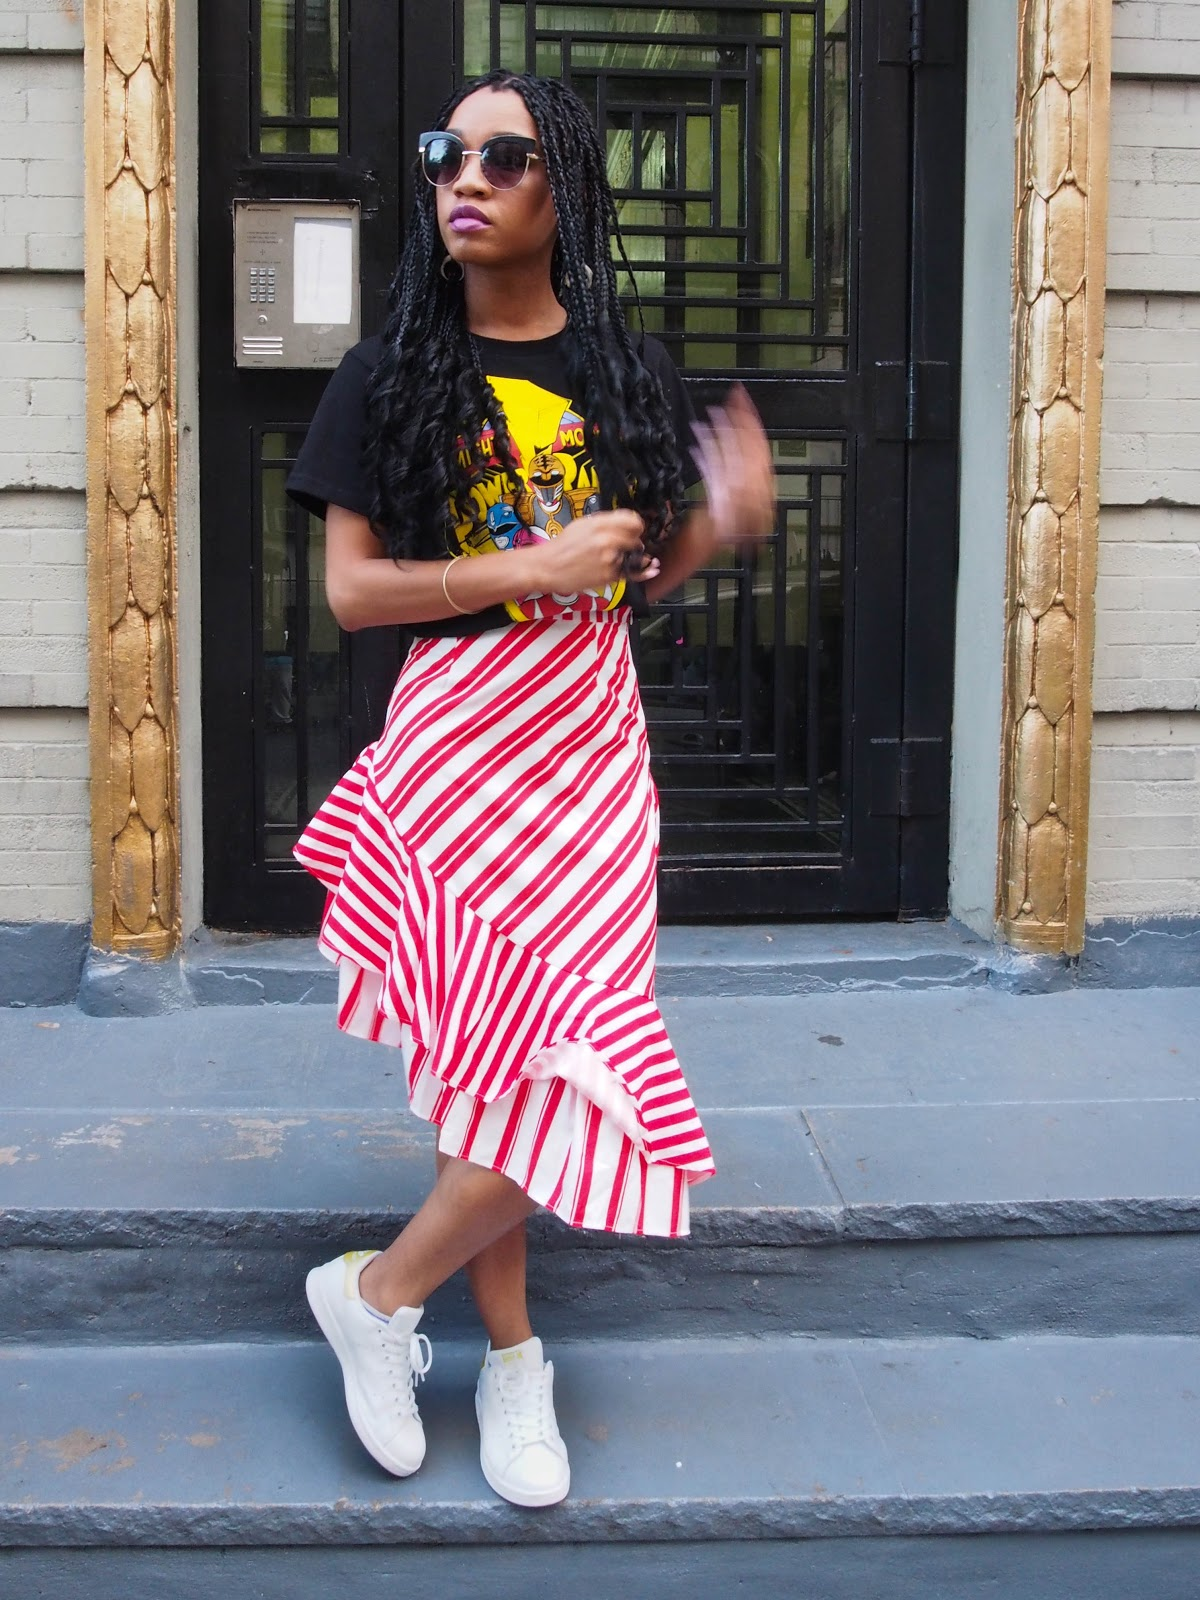 The Strong Suit, Crochet Braids, Red and White Skirt, Power Rangers Graphic Tee, Stan Smiths, Adidas, Street Style, NYFW Street Style, NYFW, Spring/Summer 2020